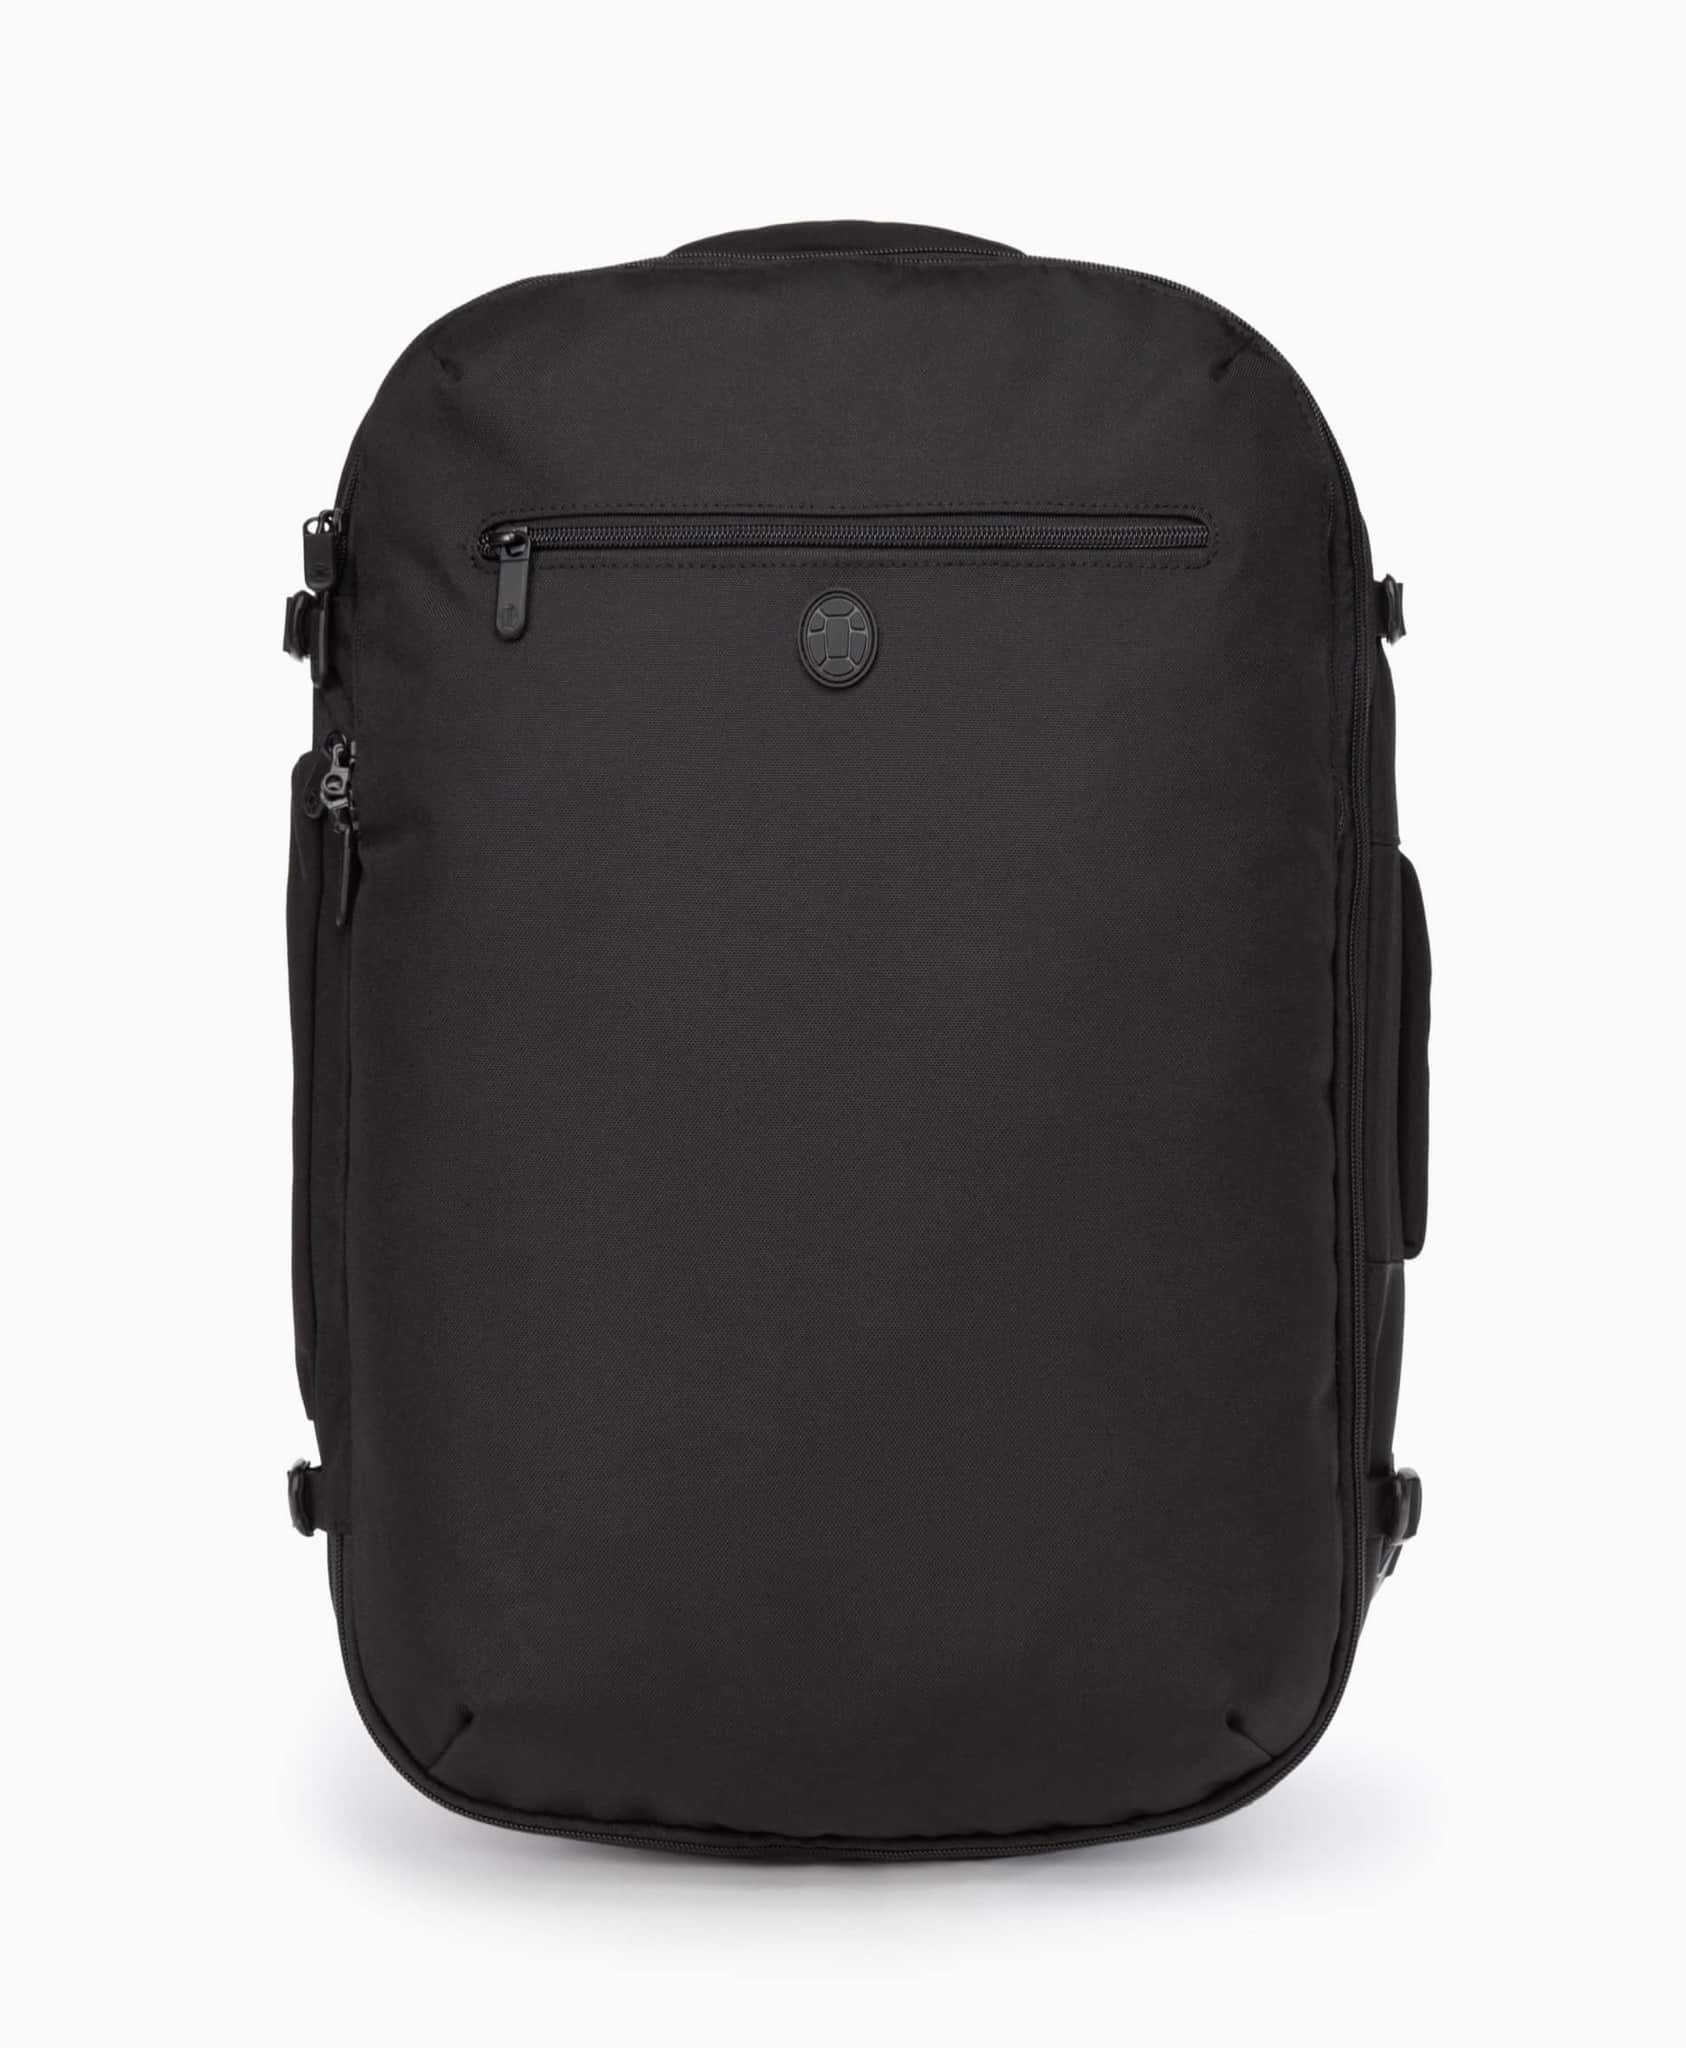 Top 9 Best Carry On Luggage in 2020: Tortuga Setout Backpack